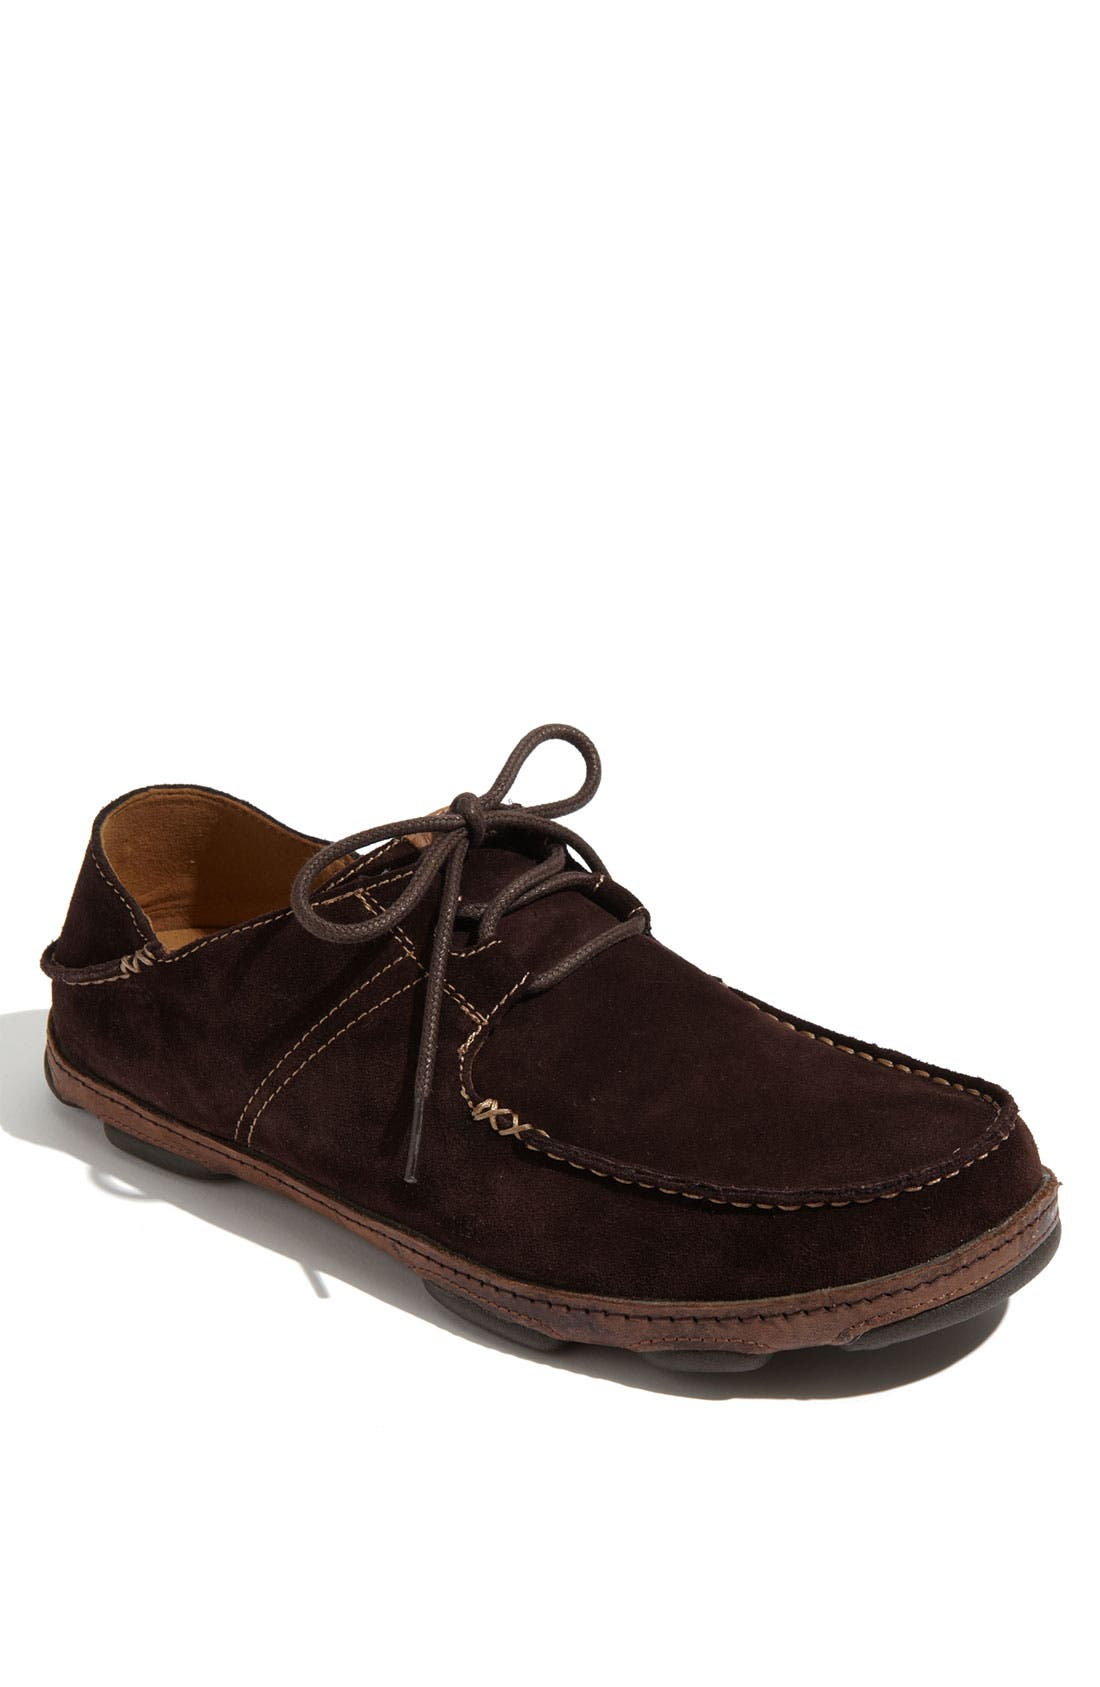 Alternate Image 1 Selected - OluKai 'Ohana' Lace Up (Men)